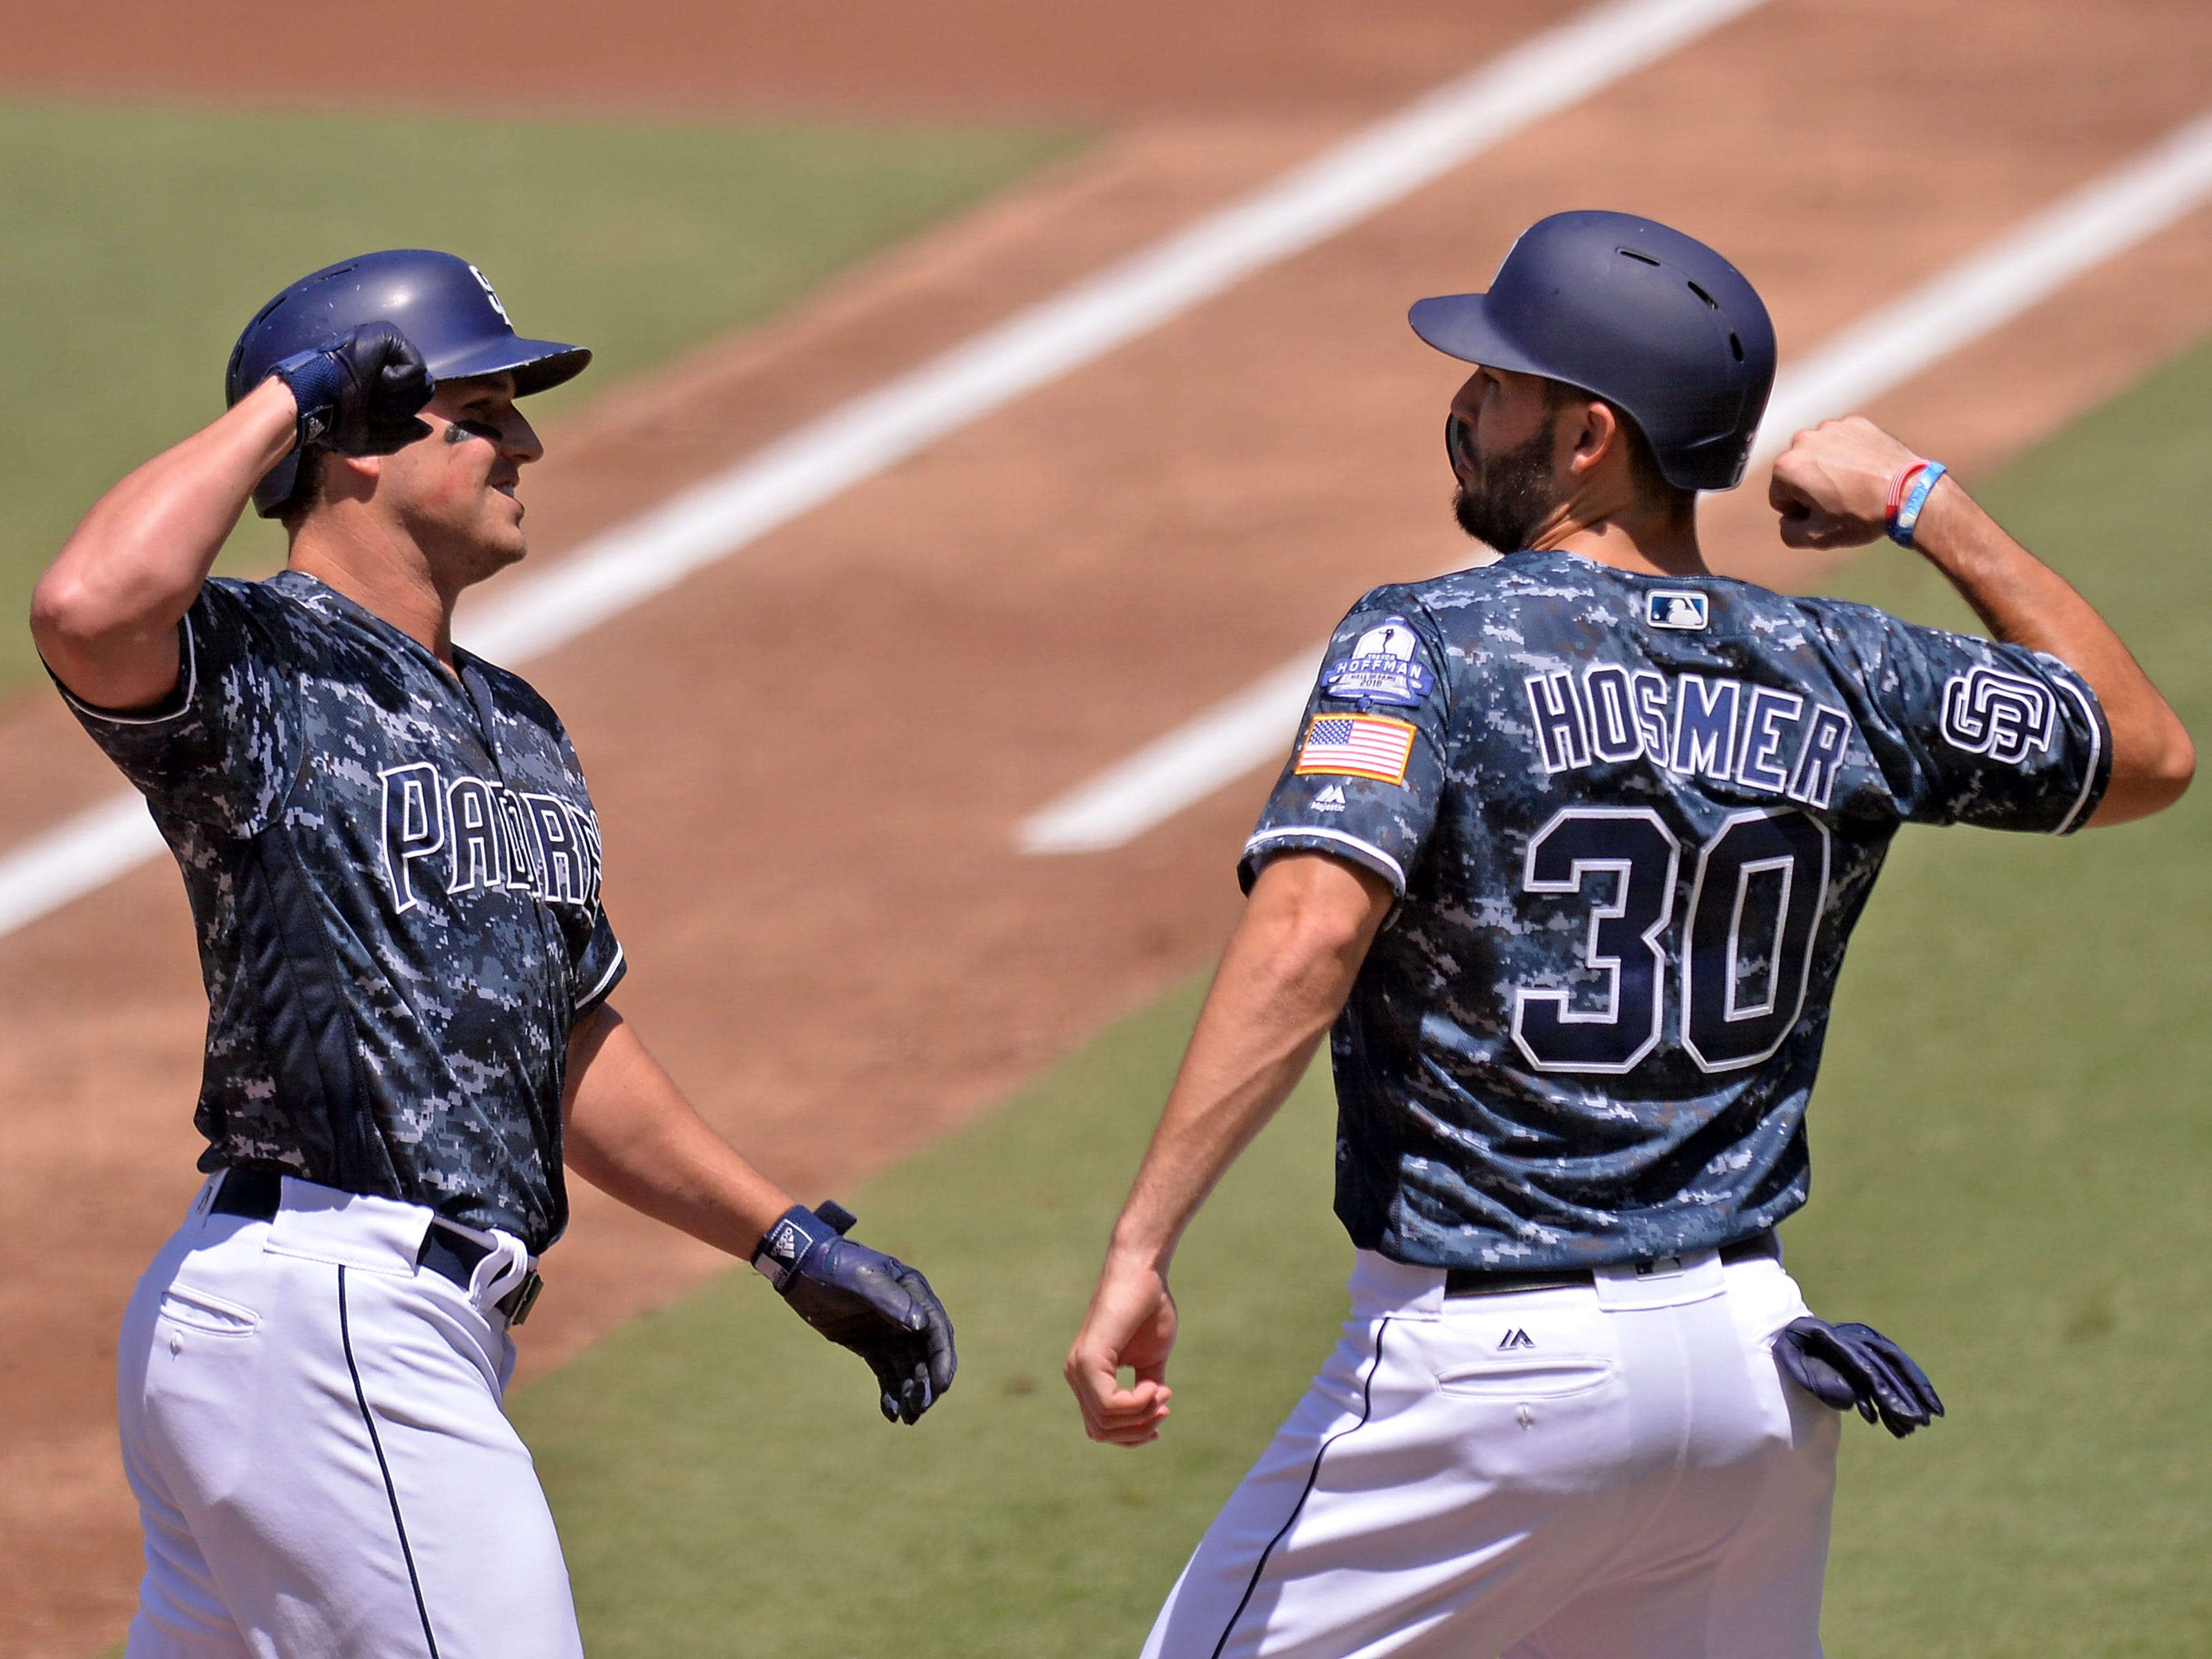 Aug 19, 2018; San Diego, CA, USA; San Diego Padres left fielder Hunter Renfroe (left) and first baseman Eric Hosmer (30) celebrate after Renfroe hit a two-run home run during the first inning against the Arizona Diamondbacks at Petco Park. Mandatory Credit: Jake Roth-USA TODAY Sports